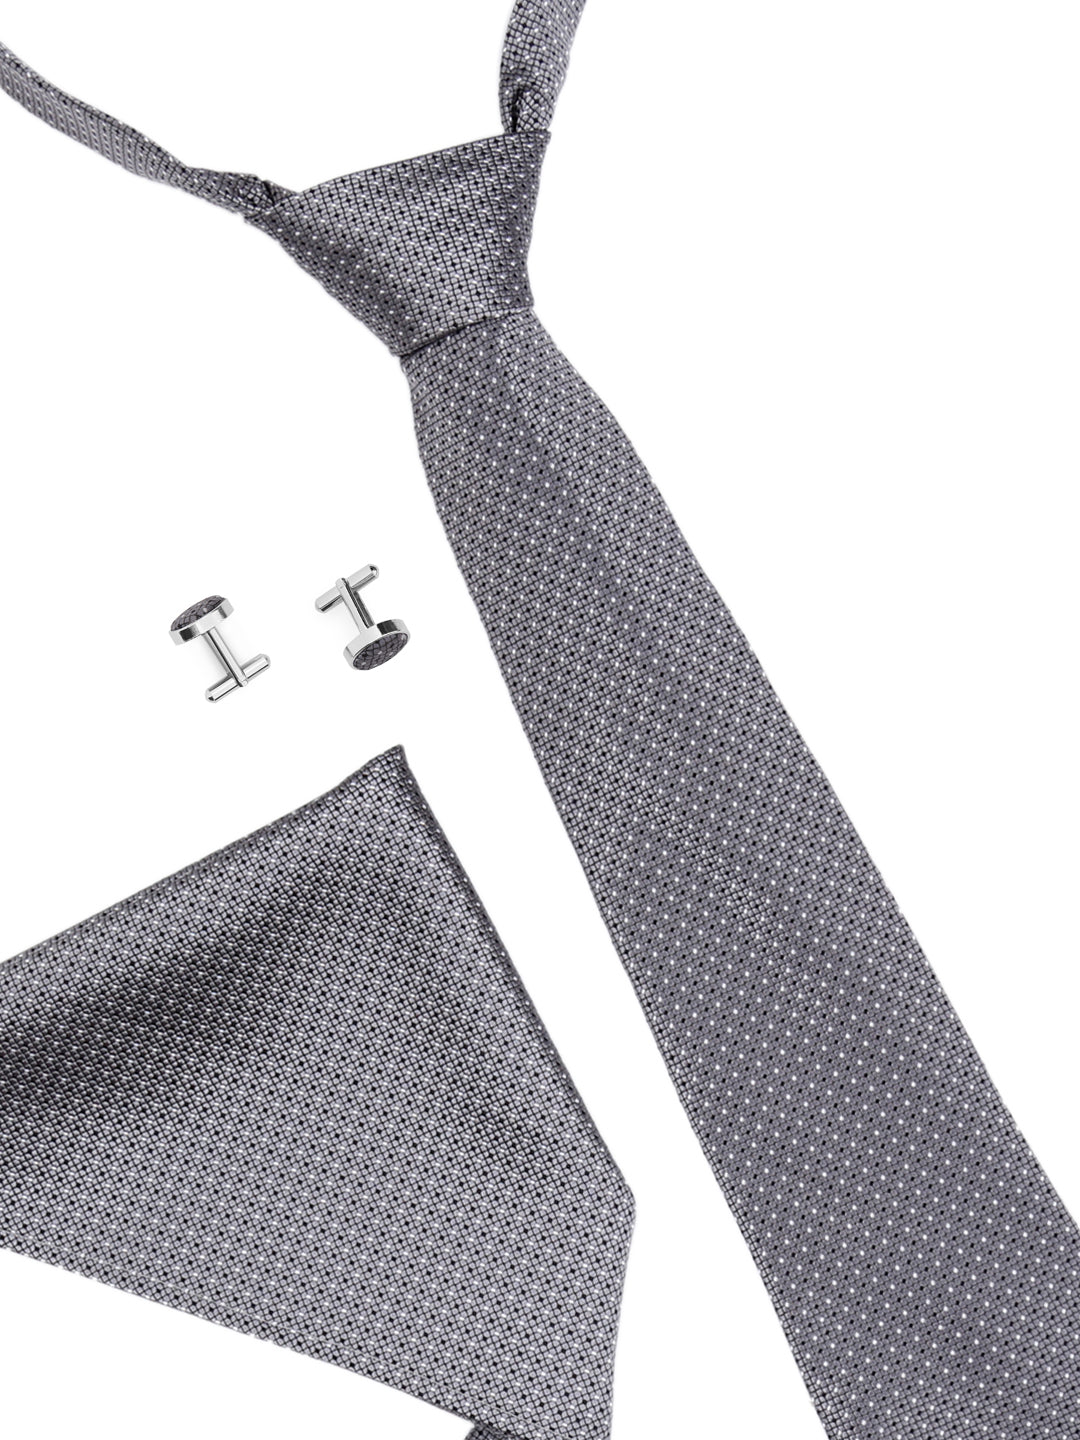 Zido Tie Cufflink Pocket Square Combos for Men TCP188